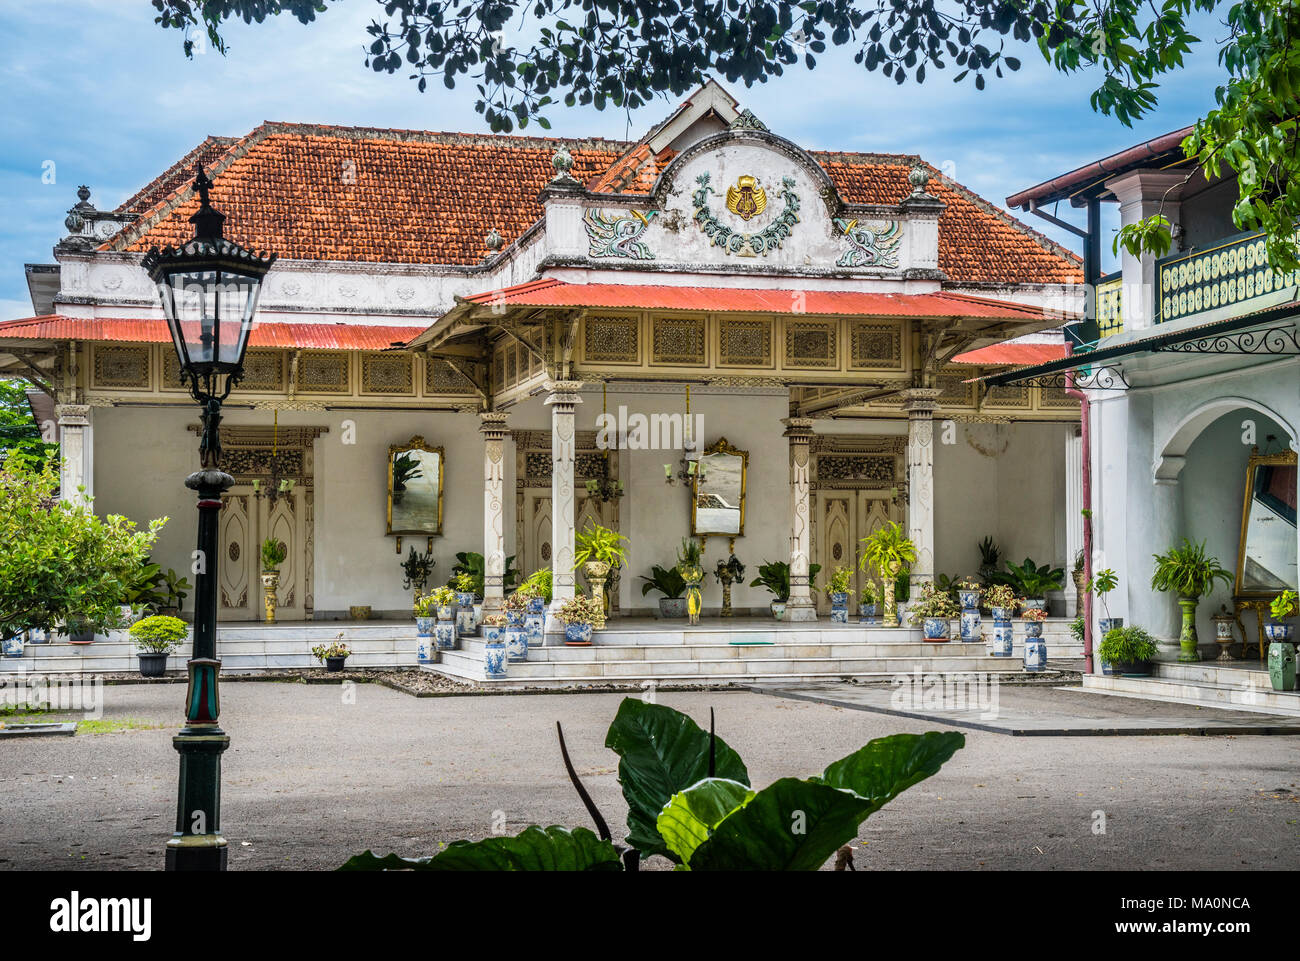 prominent palatial building of javanese architecture, influenced by Dutch Colonial style, Gedong Jene, also known as the yellow building at the Kraton - Stock Image